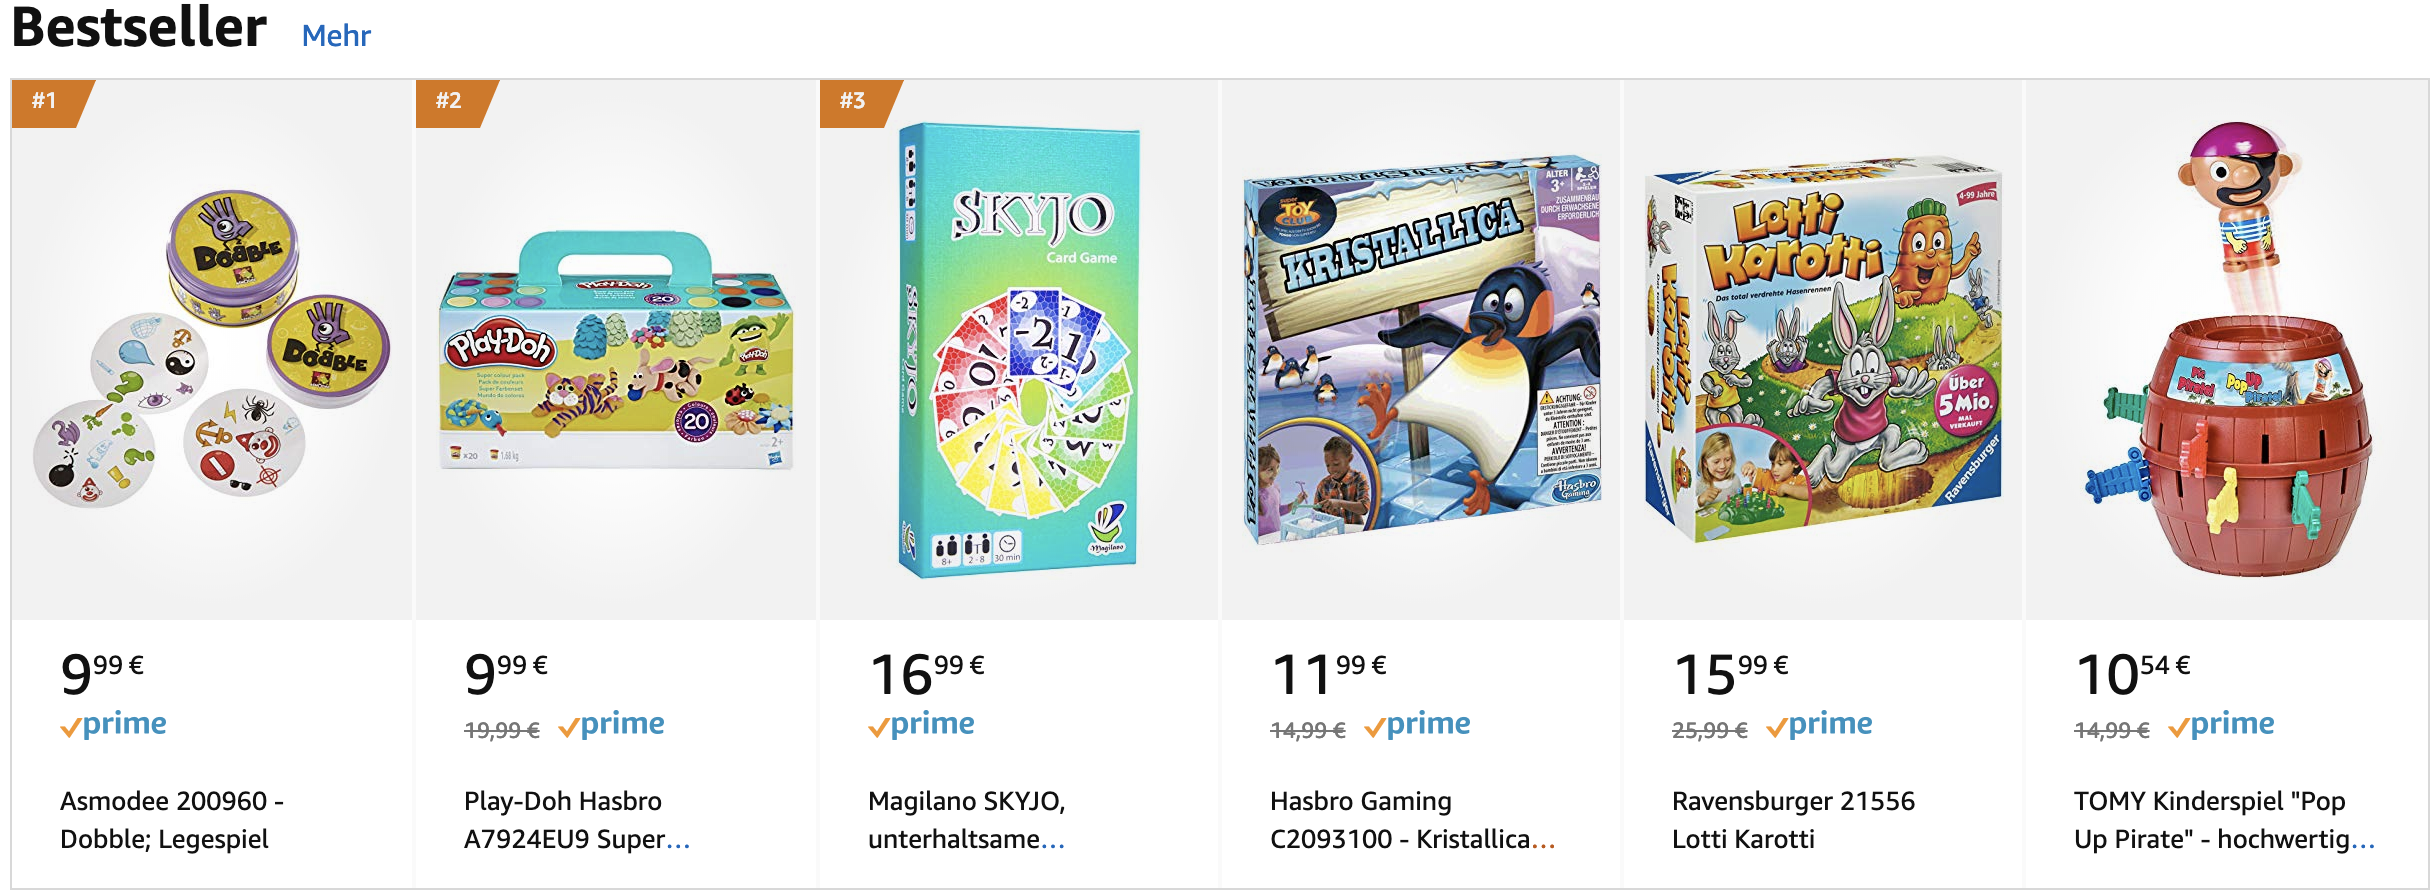 Best Sellers in Amazon Germany's Toys & Games Category